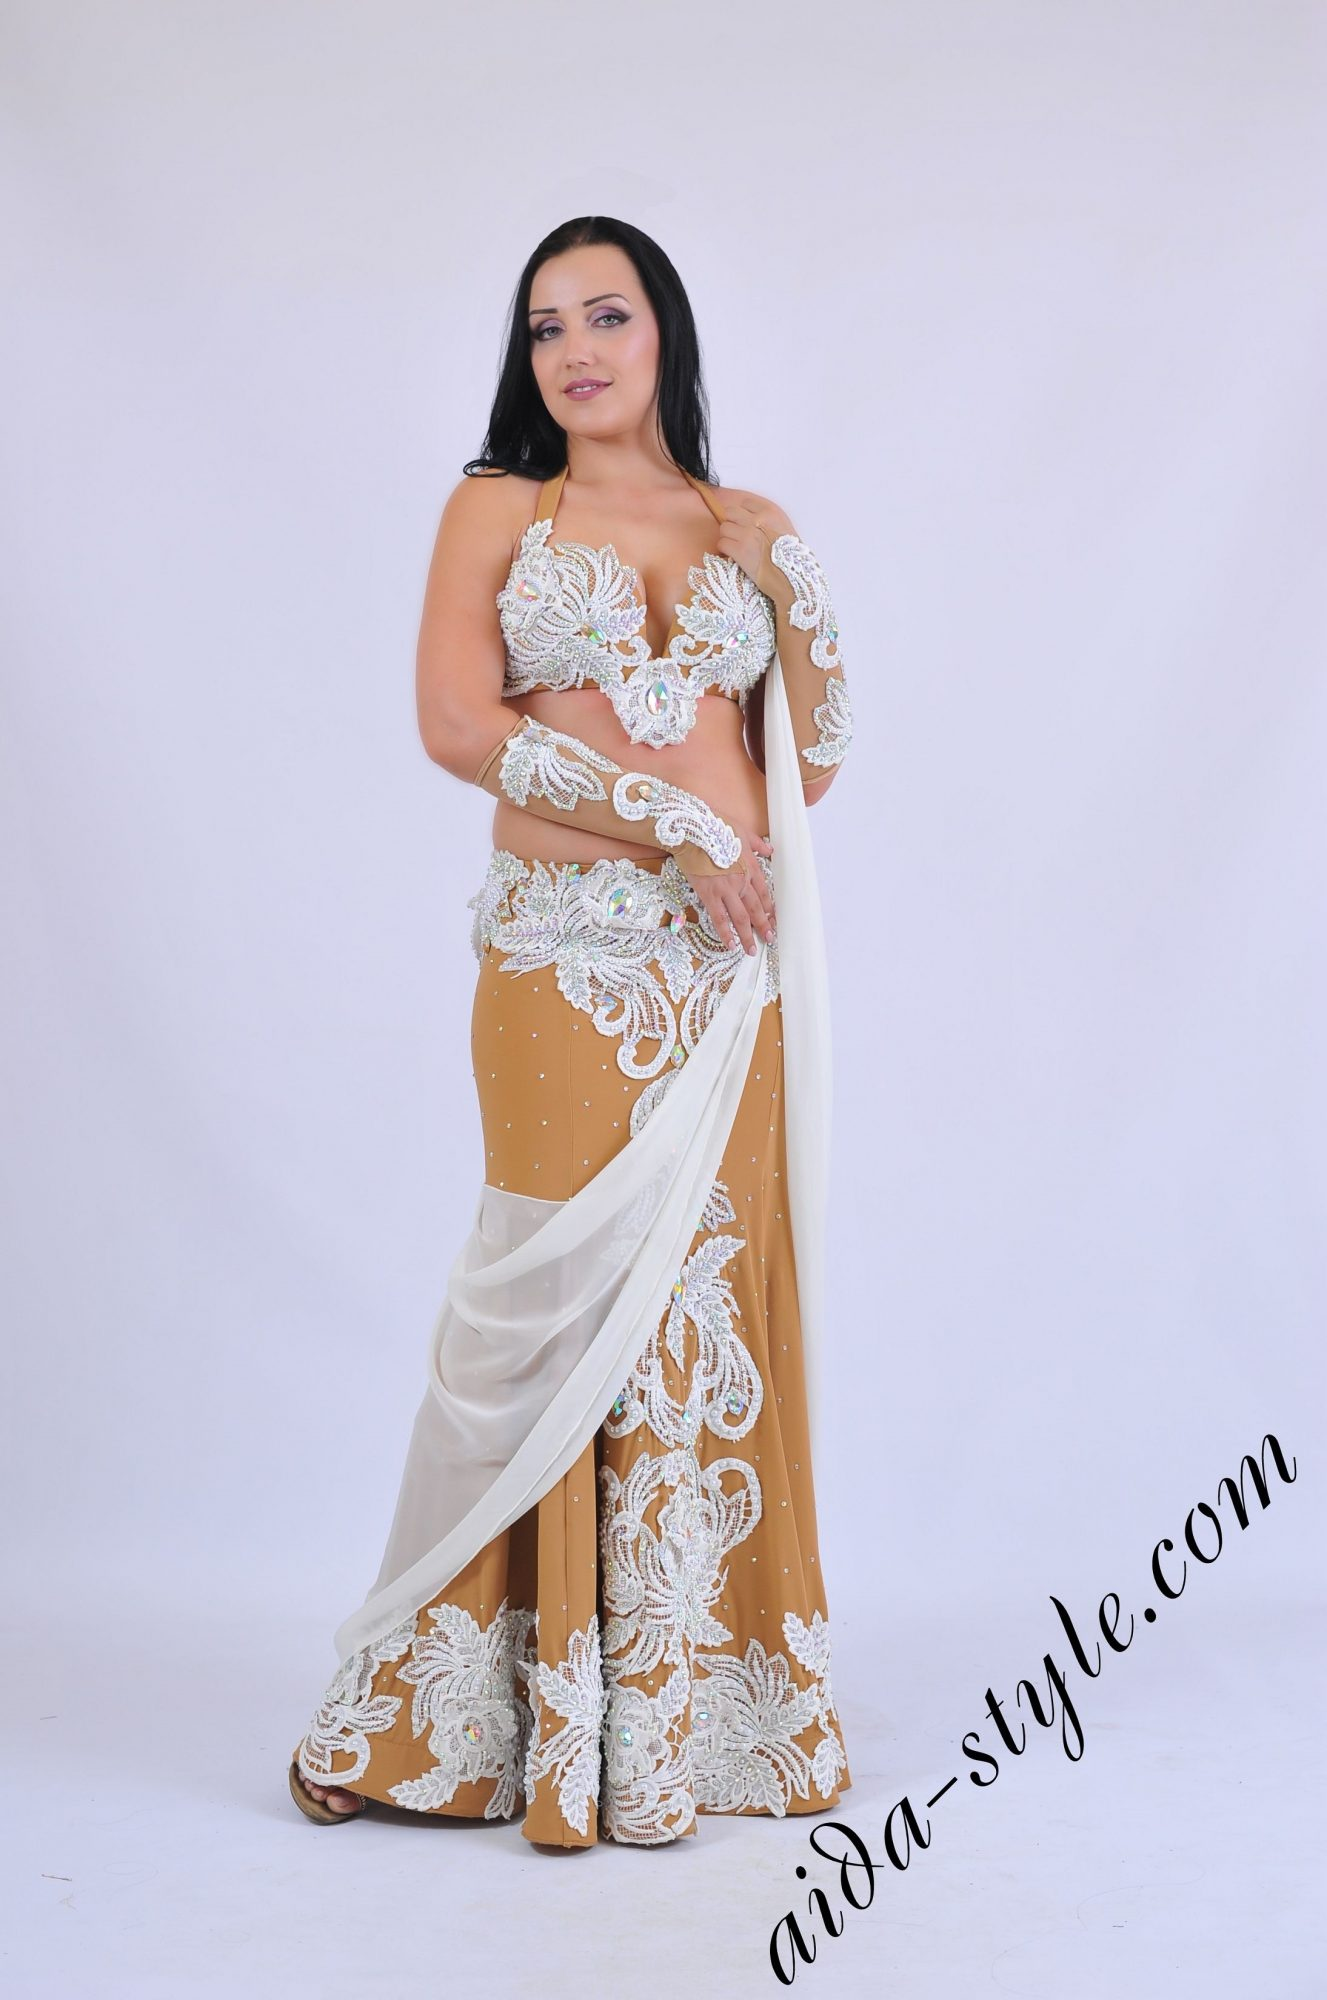 Premium Aida Style belly dance costume with gloves